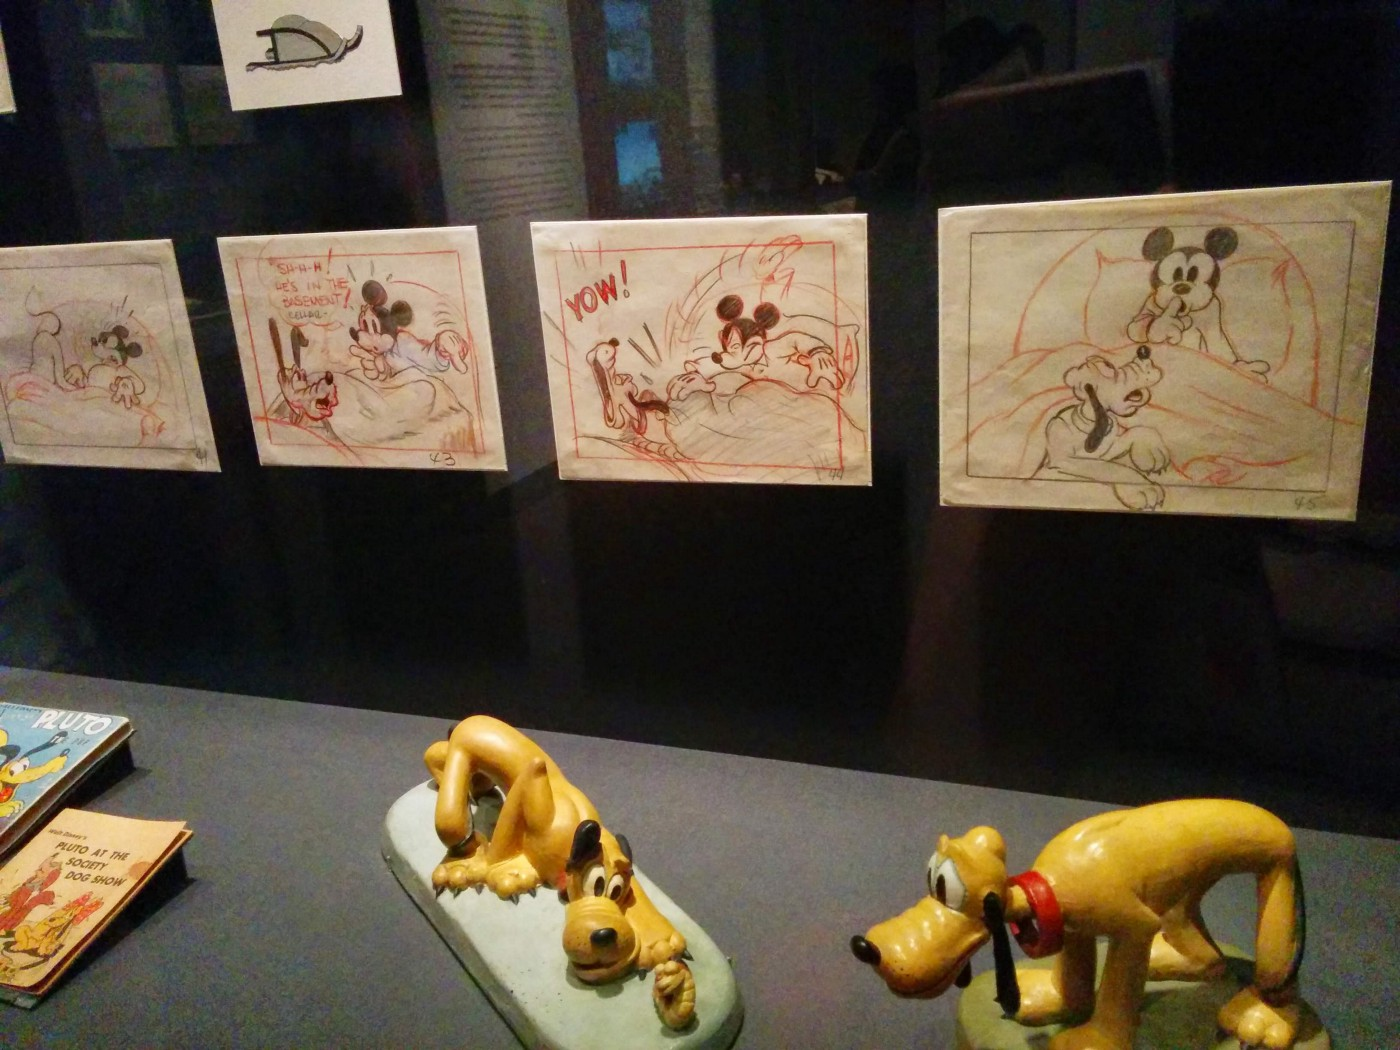 Sketches on display in The Walt Disney Family Museum